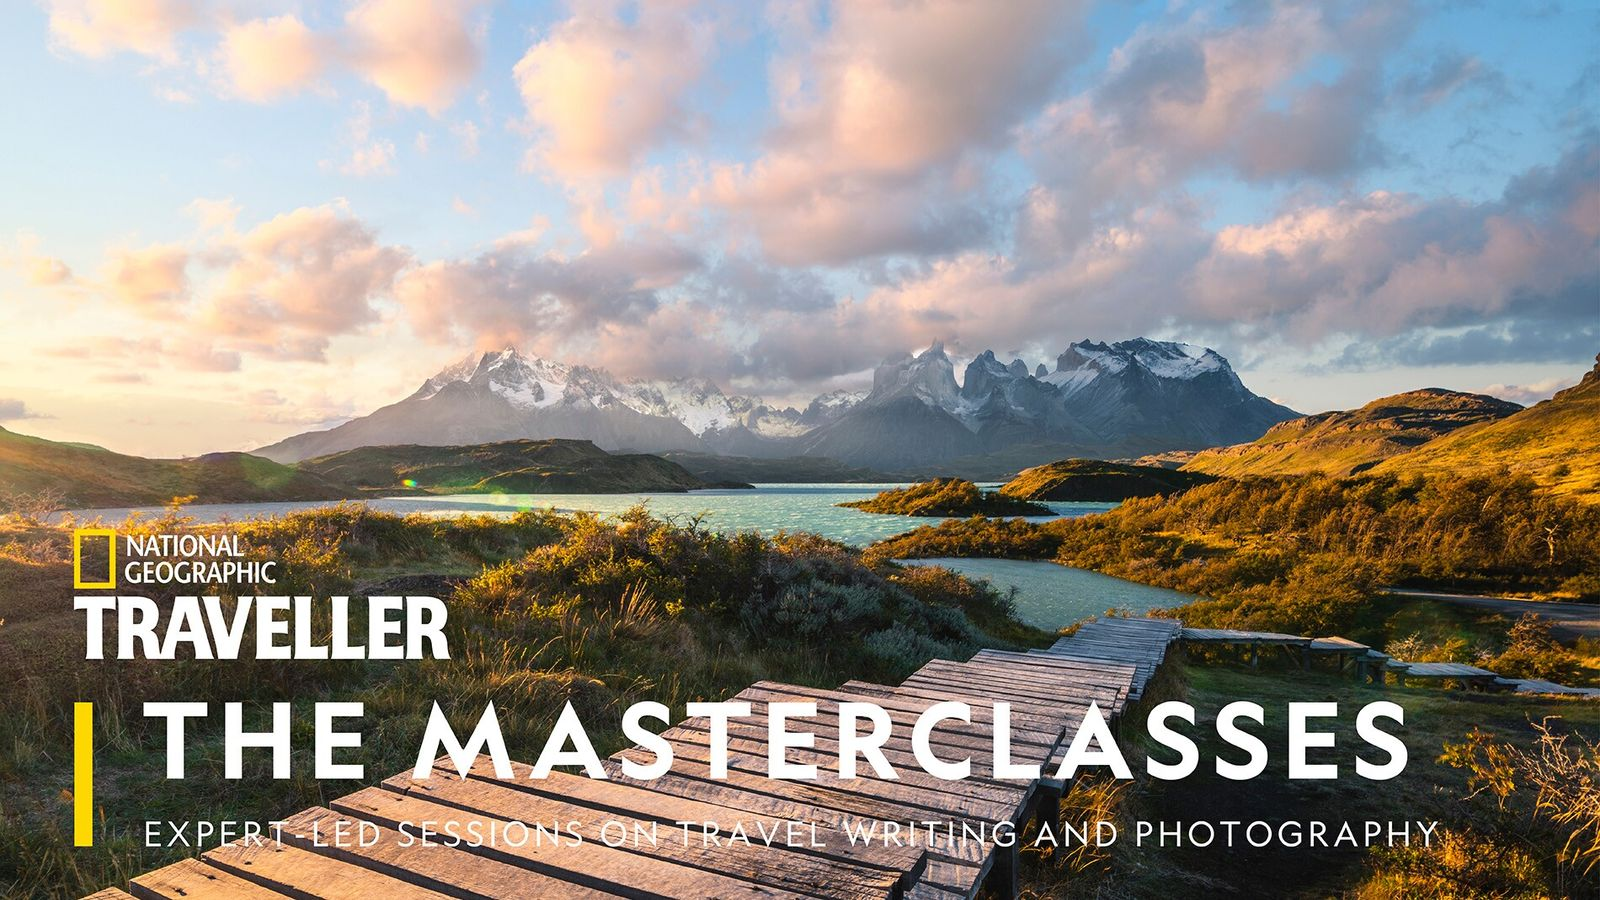 Budding travel writers and photographers can take part in the expert-led sessions, led by the magazine's ...